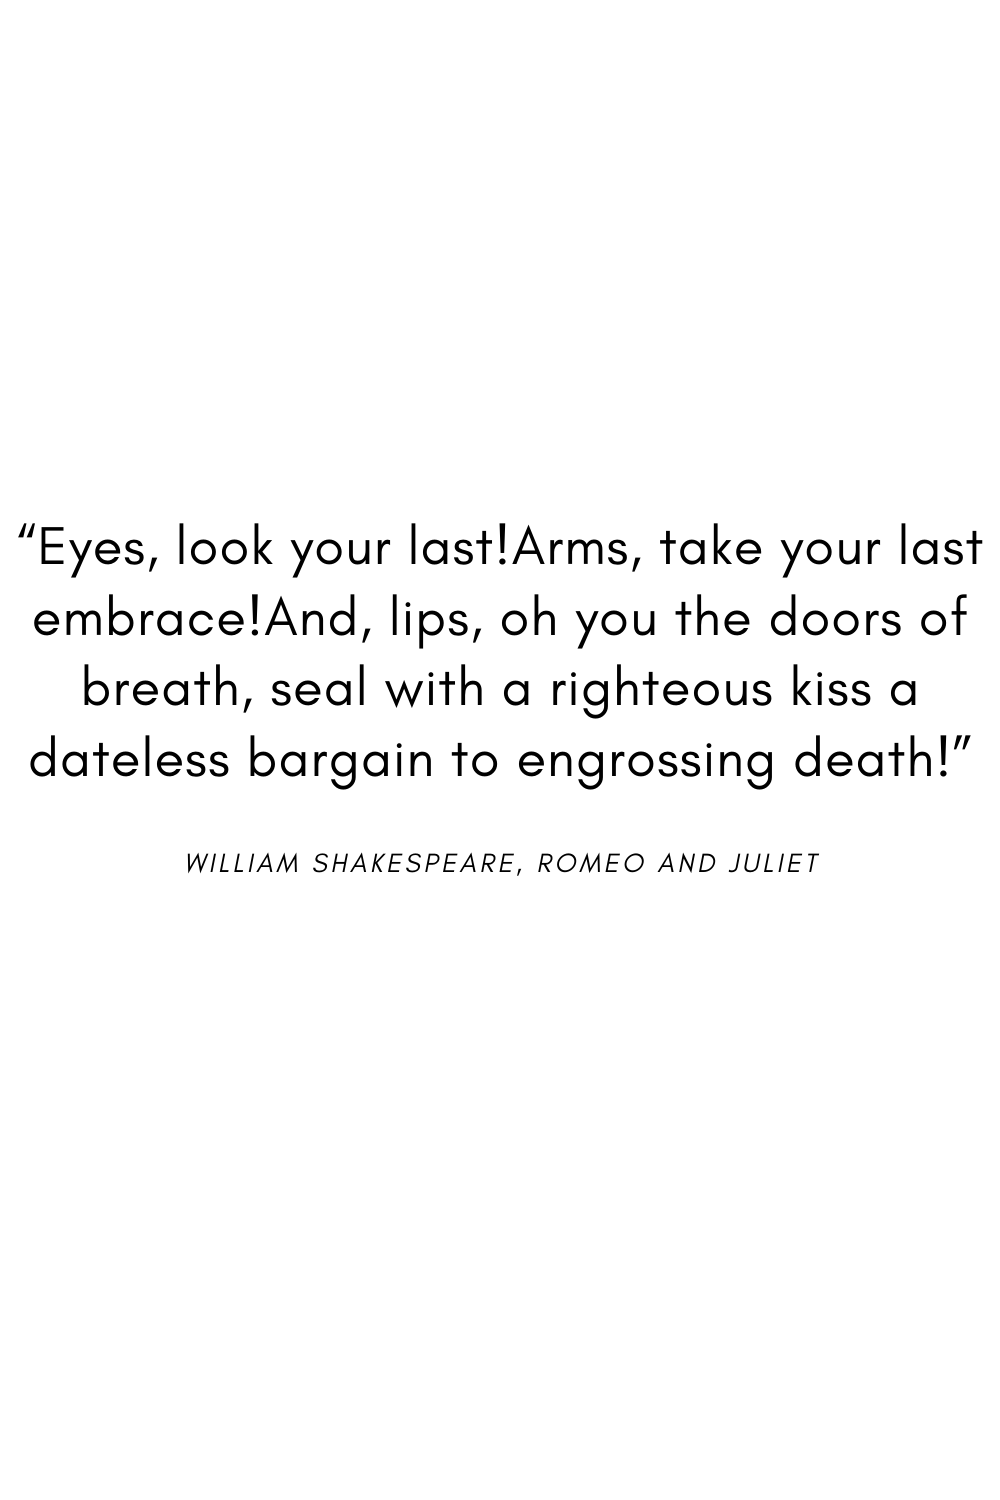 Romeo and juliet essay quotes